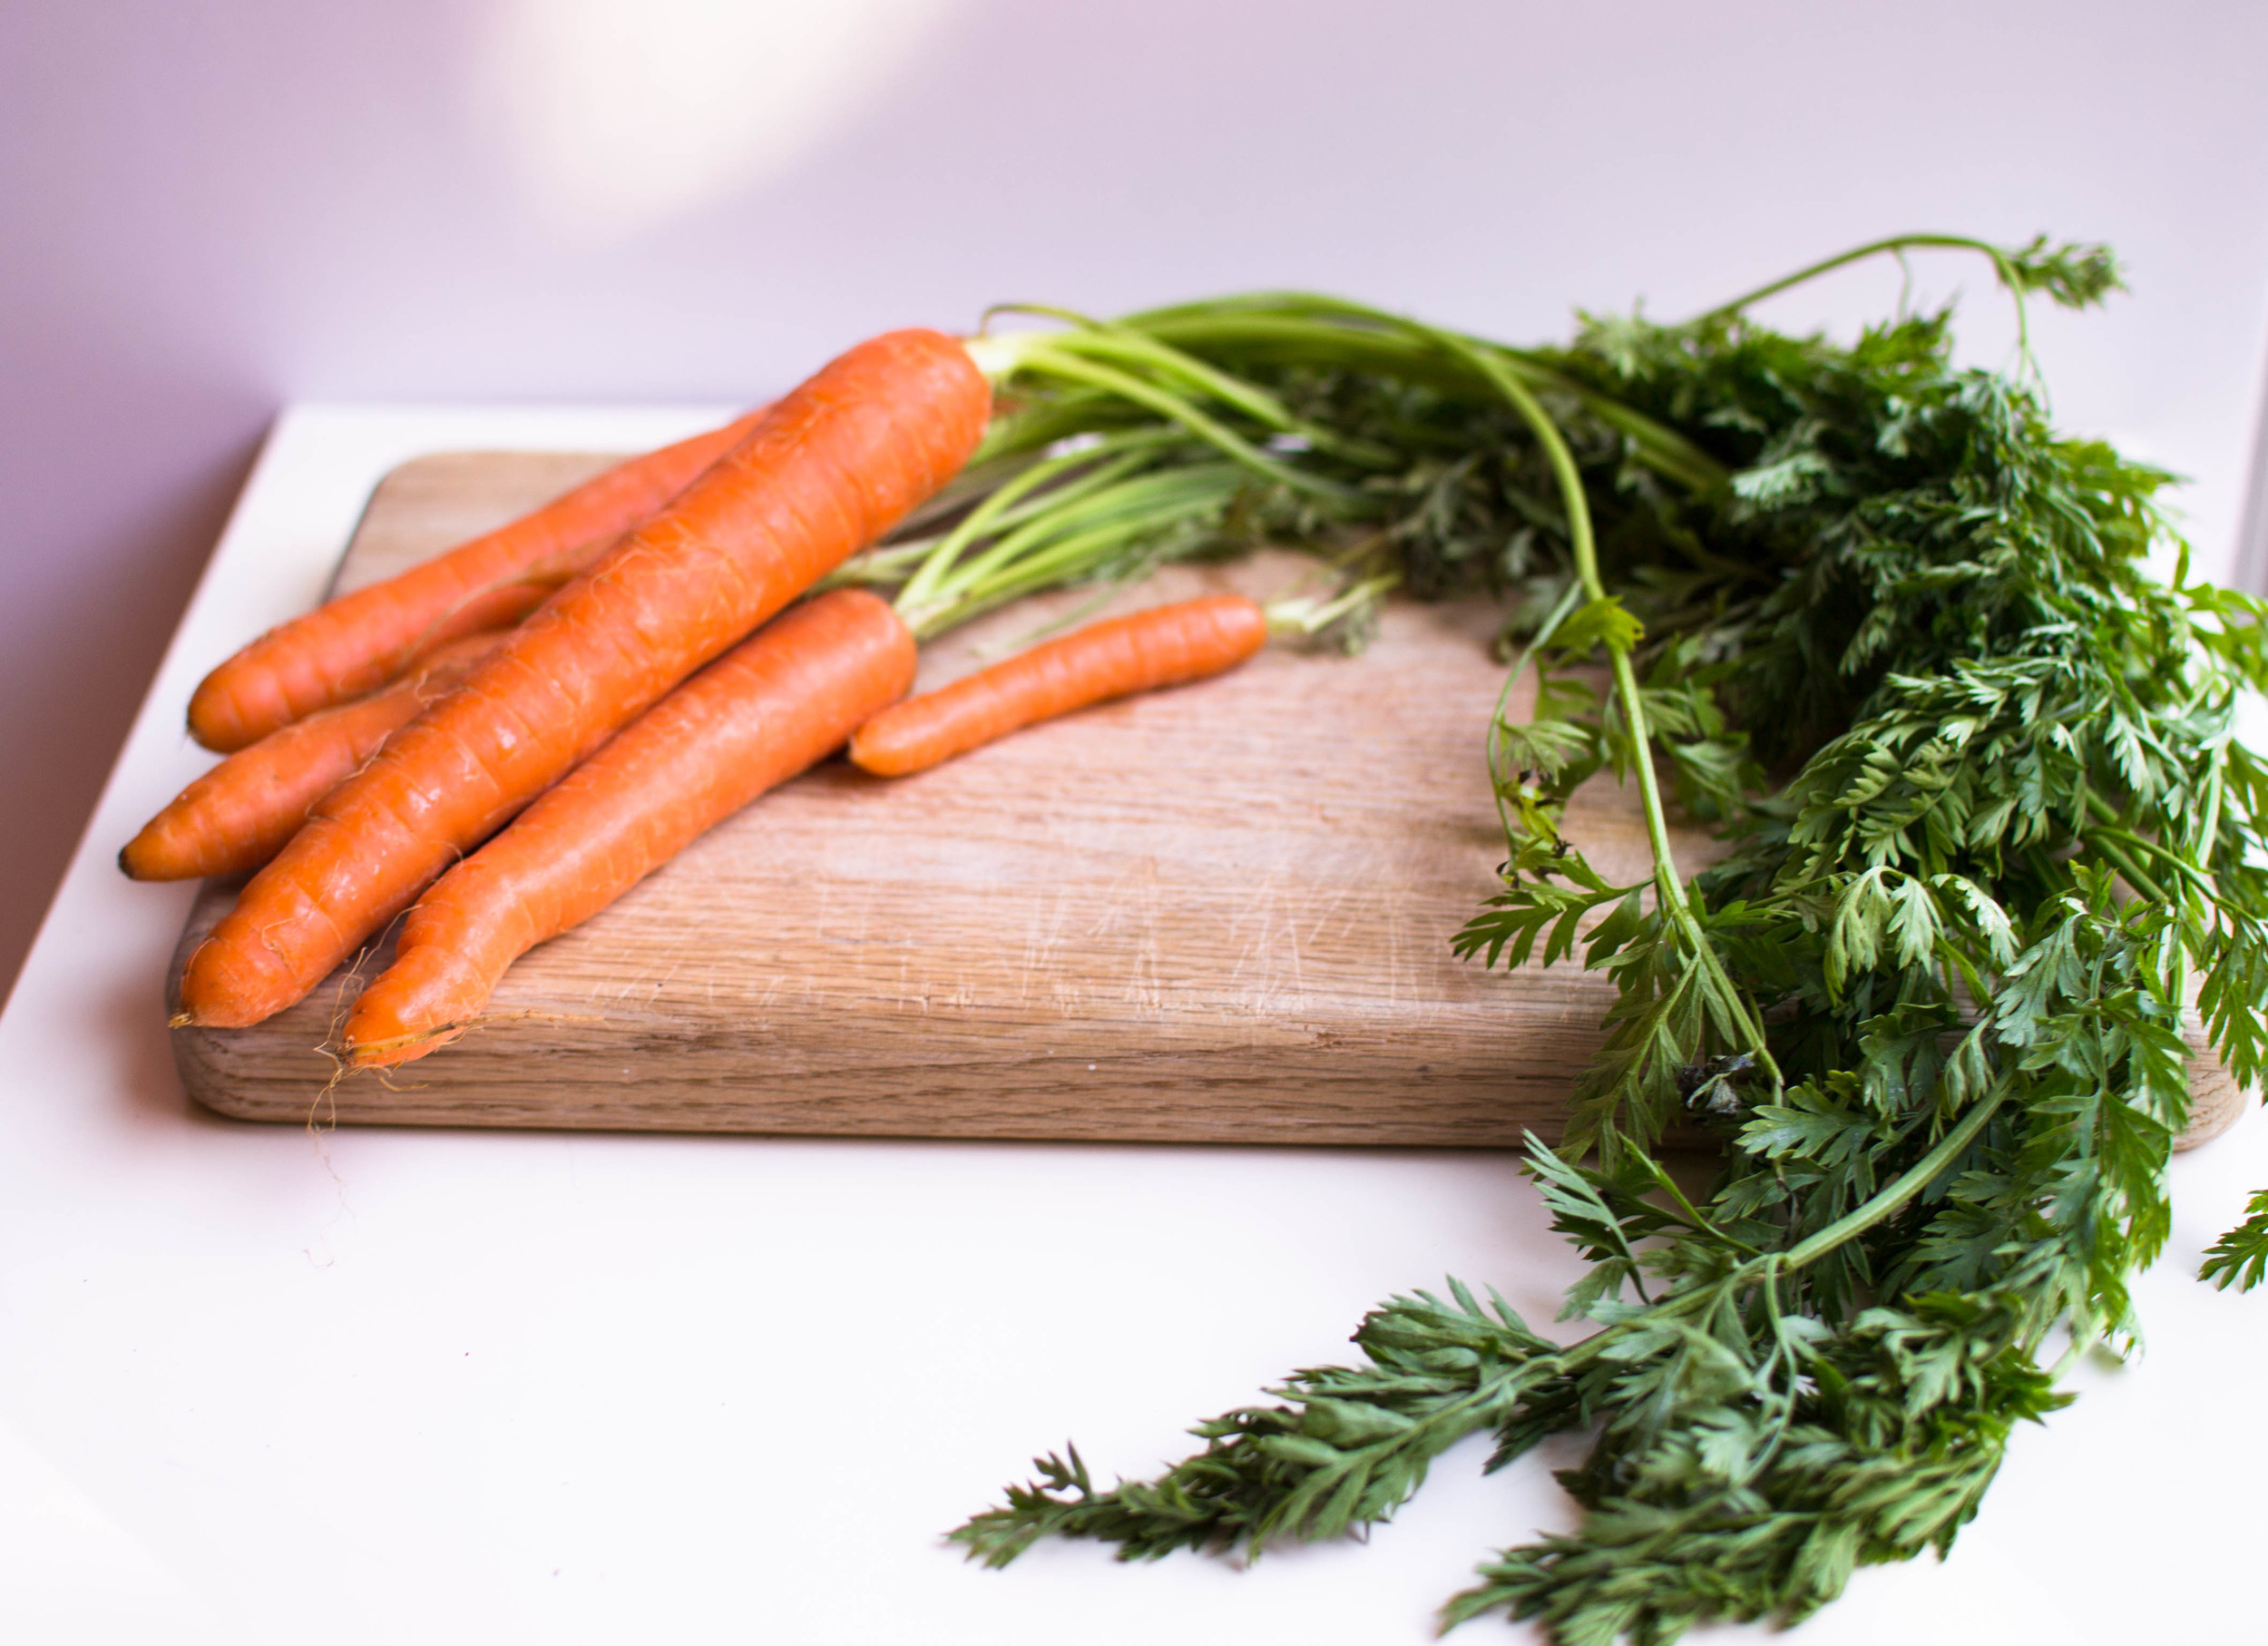 Gorgeous carrots and their tops. Use it all!